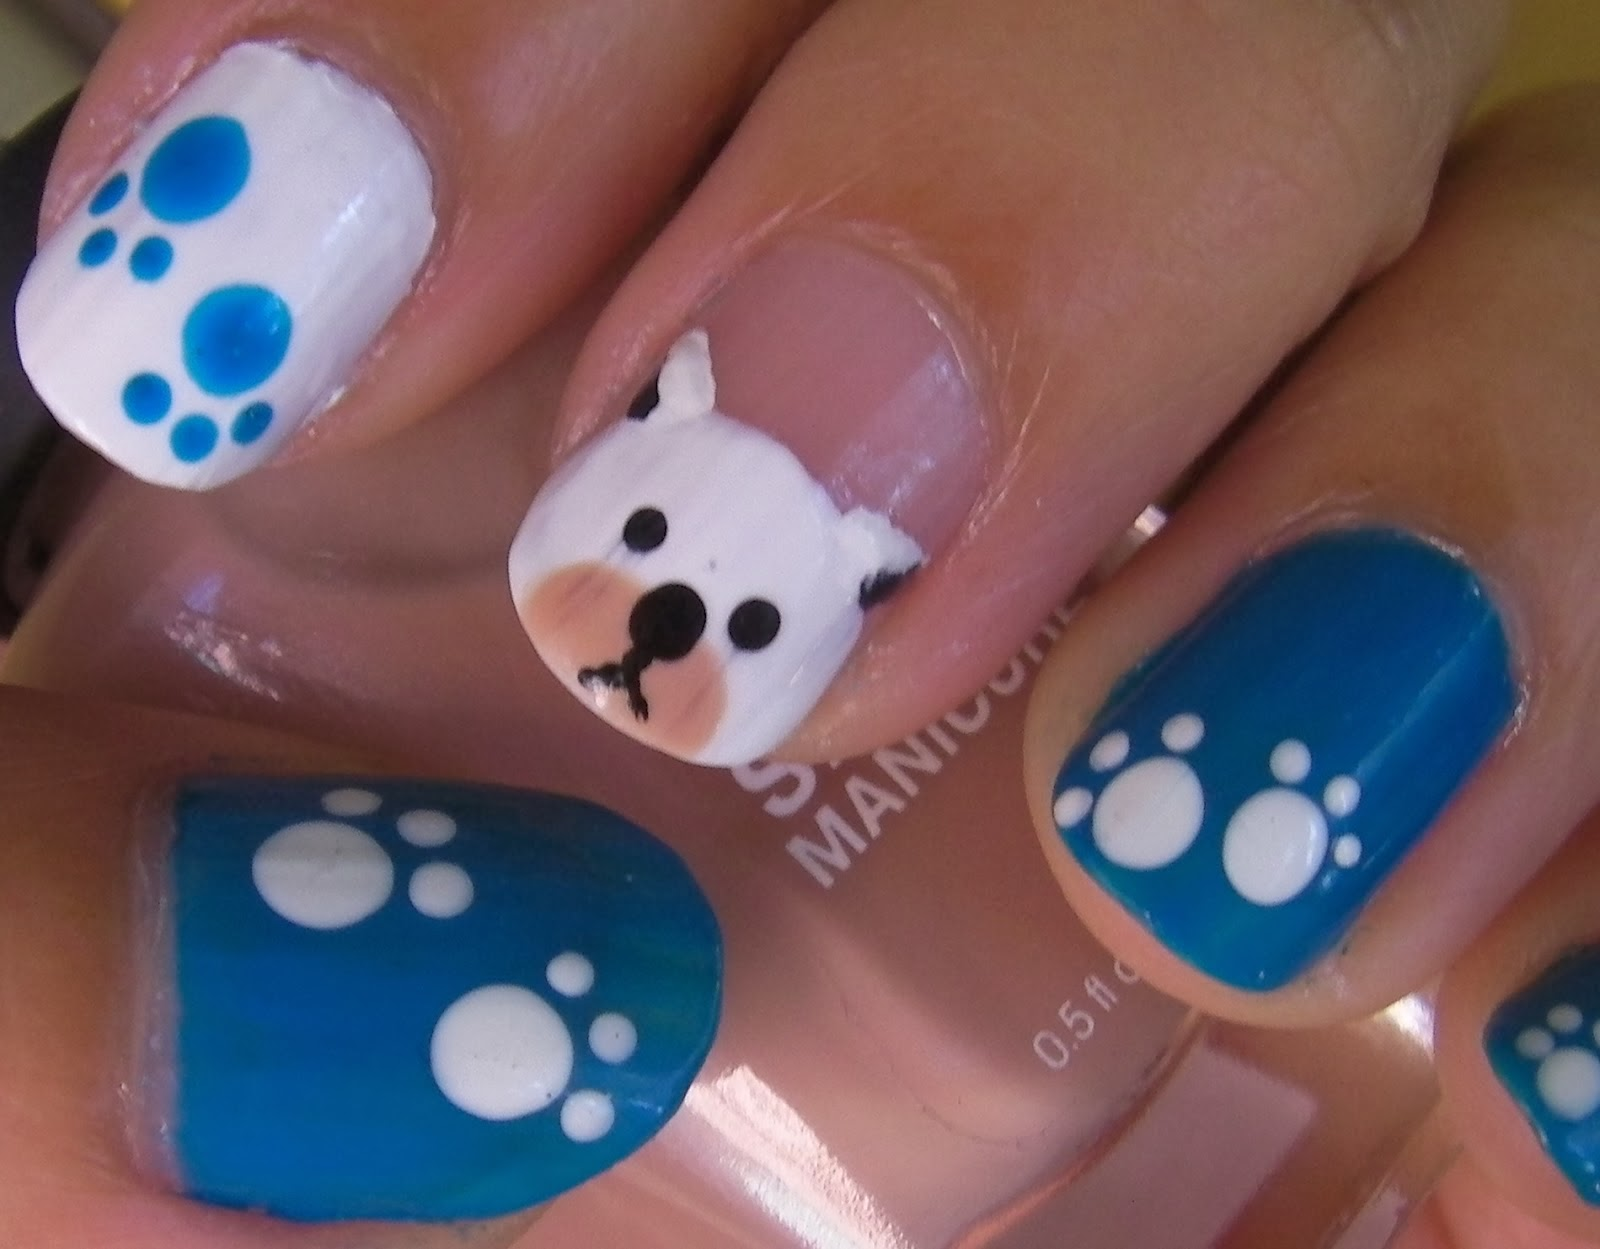 The Glamorous Acrylic nails animal print designs Photograph